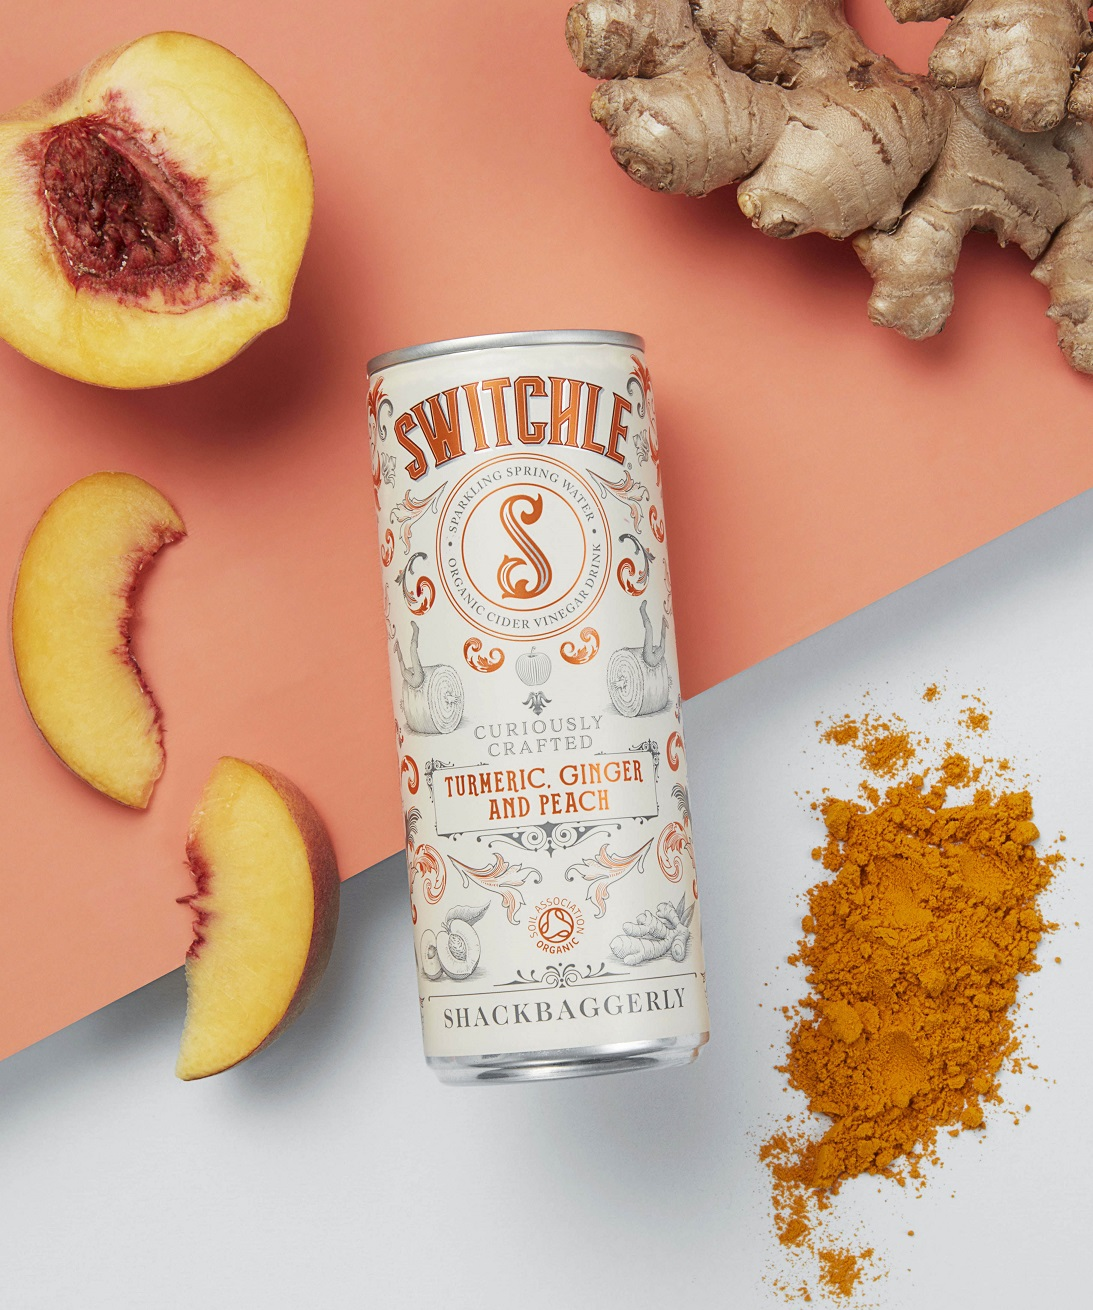 Switchle - An Organic, Fermented Adult Drink Startup